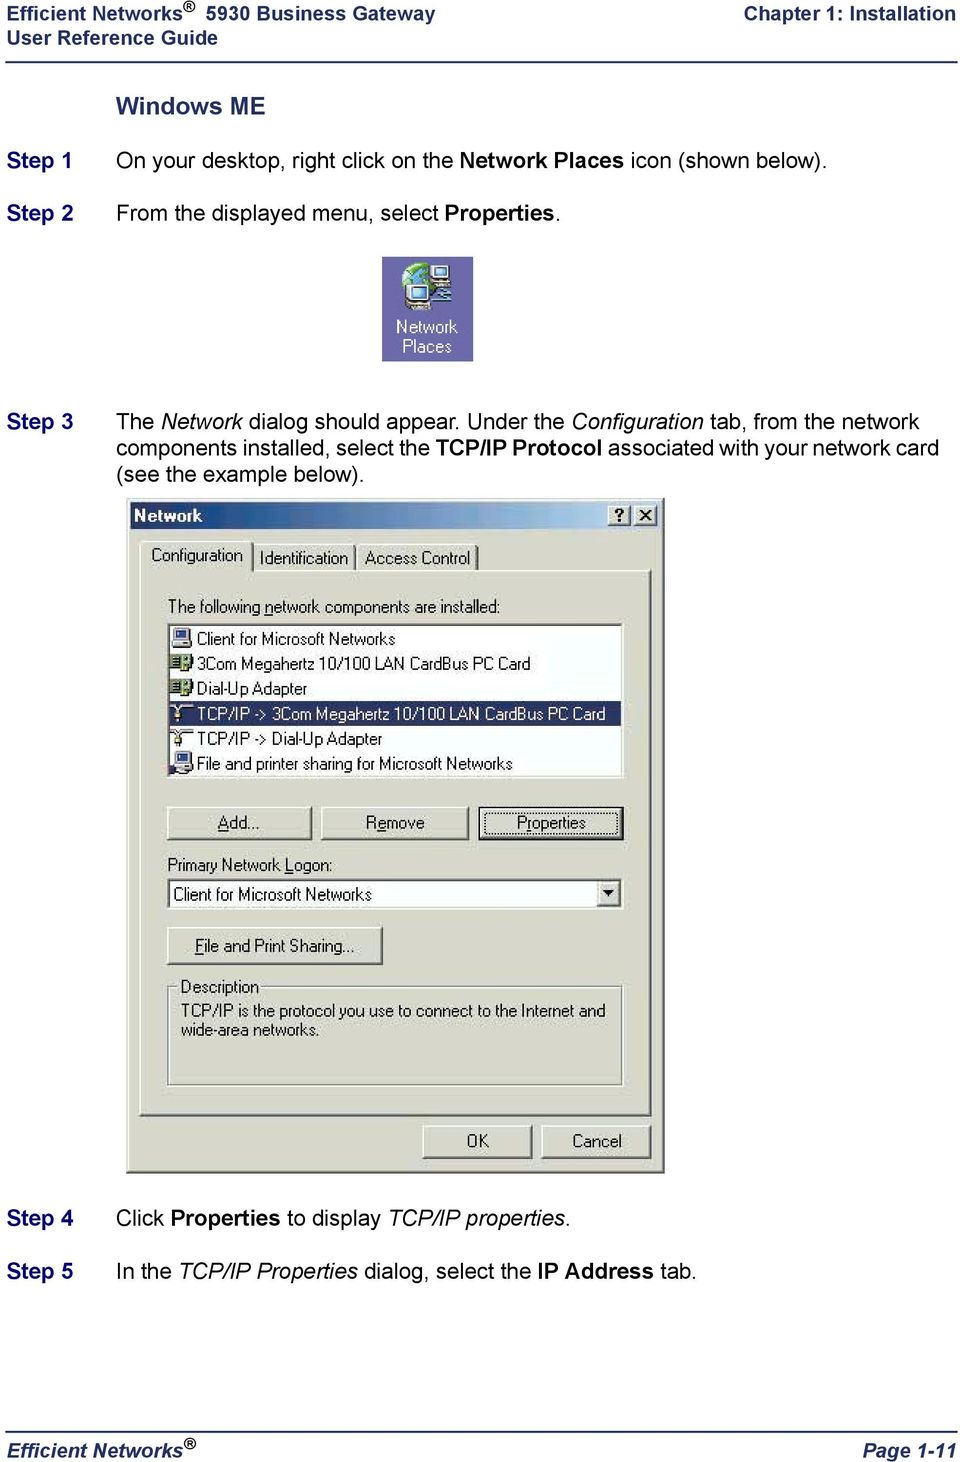 Under the Configuration tab, from the network components installed, select the TCP/IP Protocol associated with your network card (see the